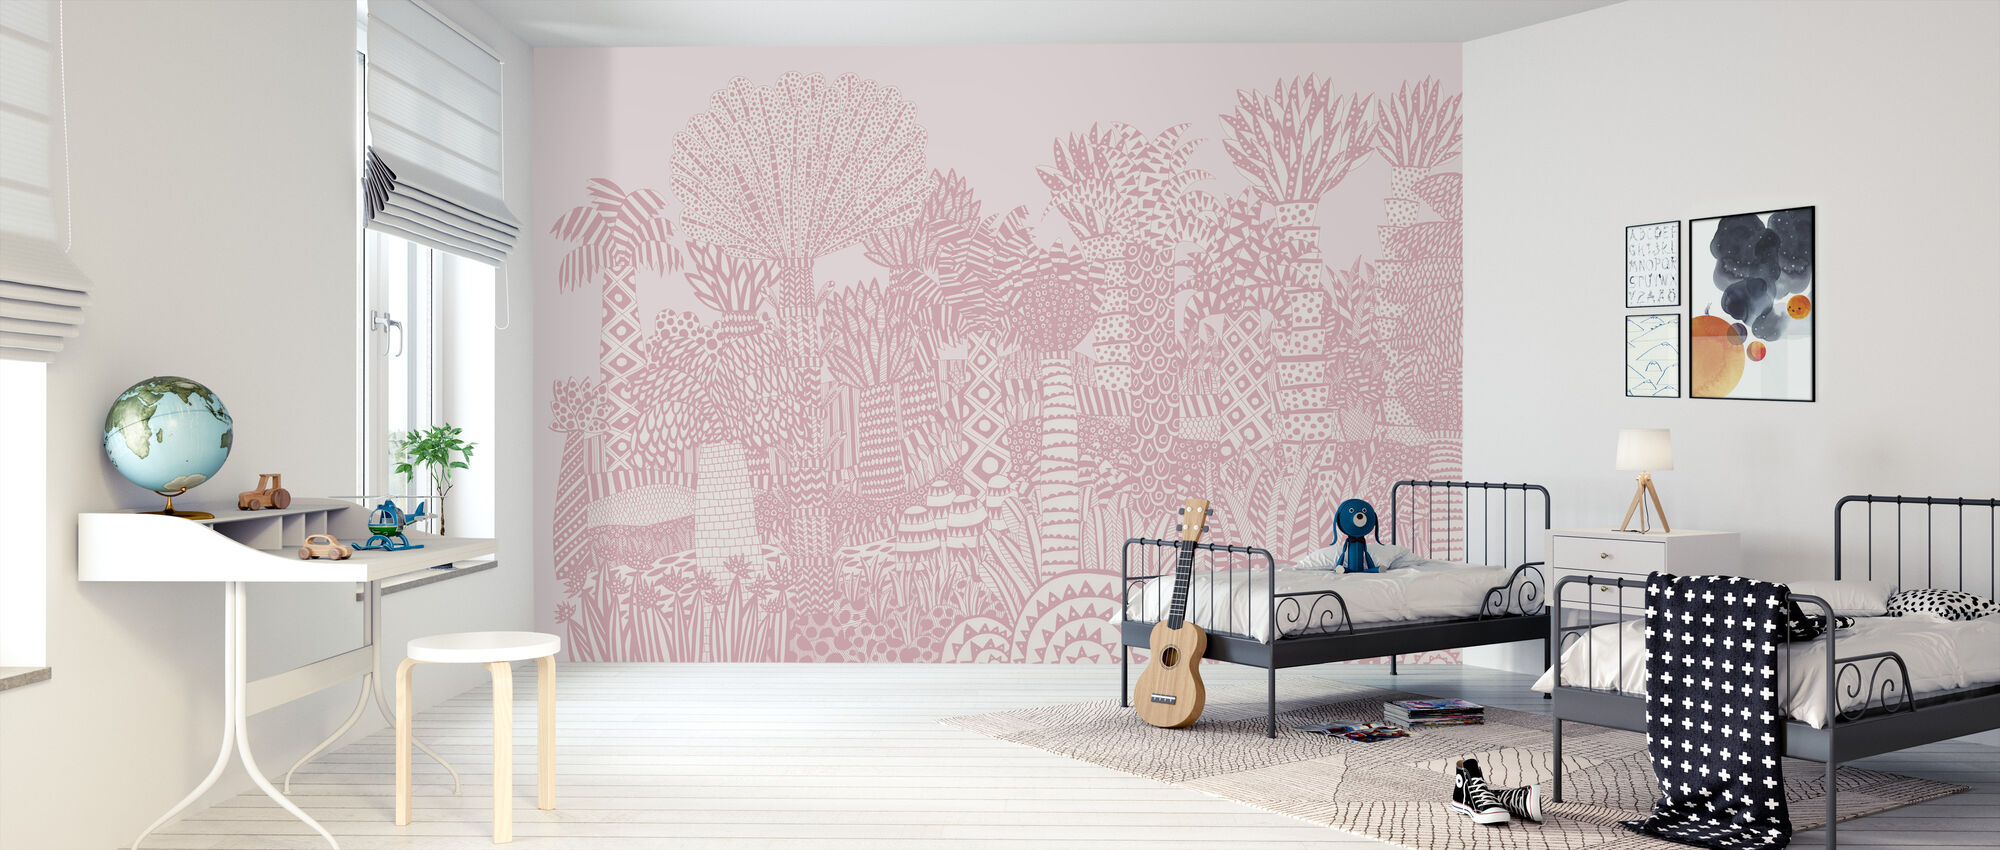 Jungle Roze - Behang - Kinderkamer